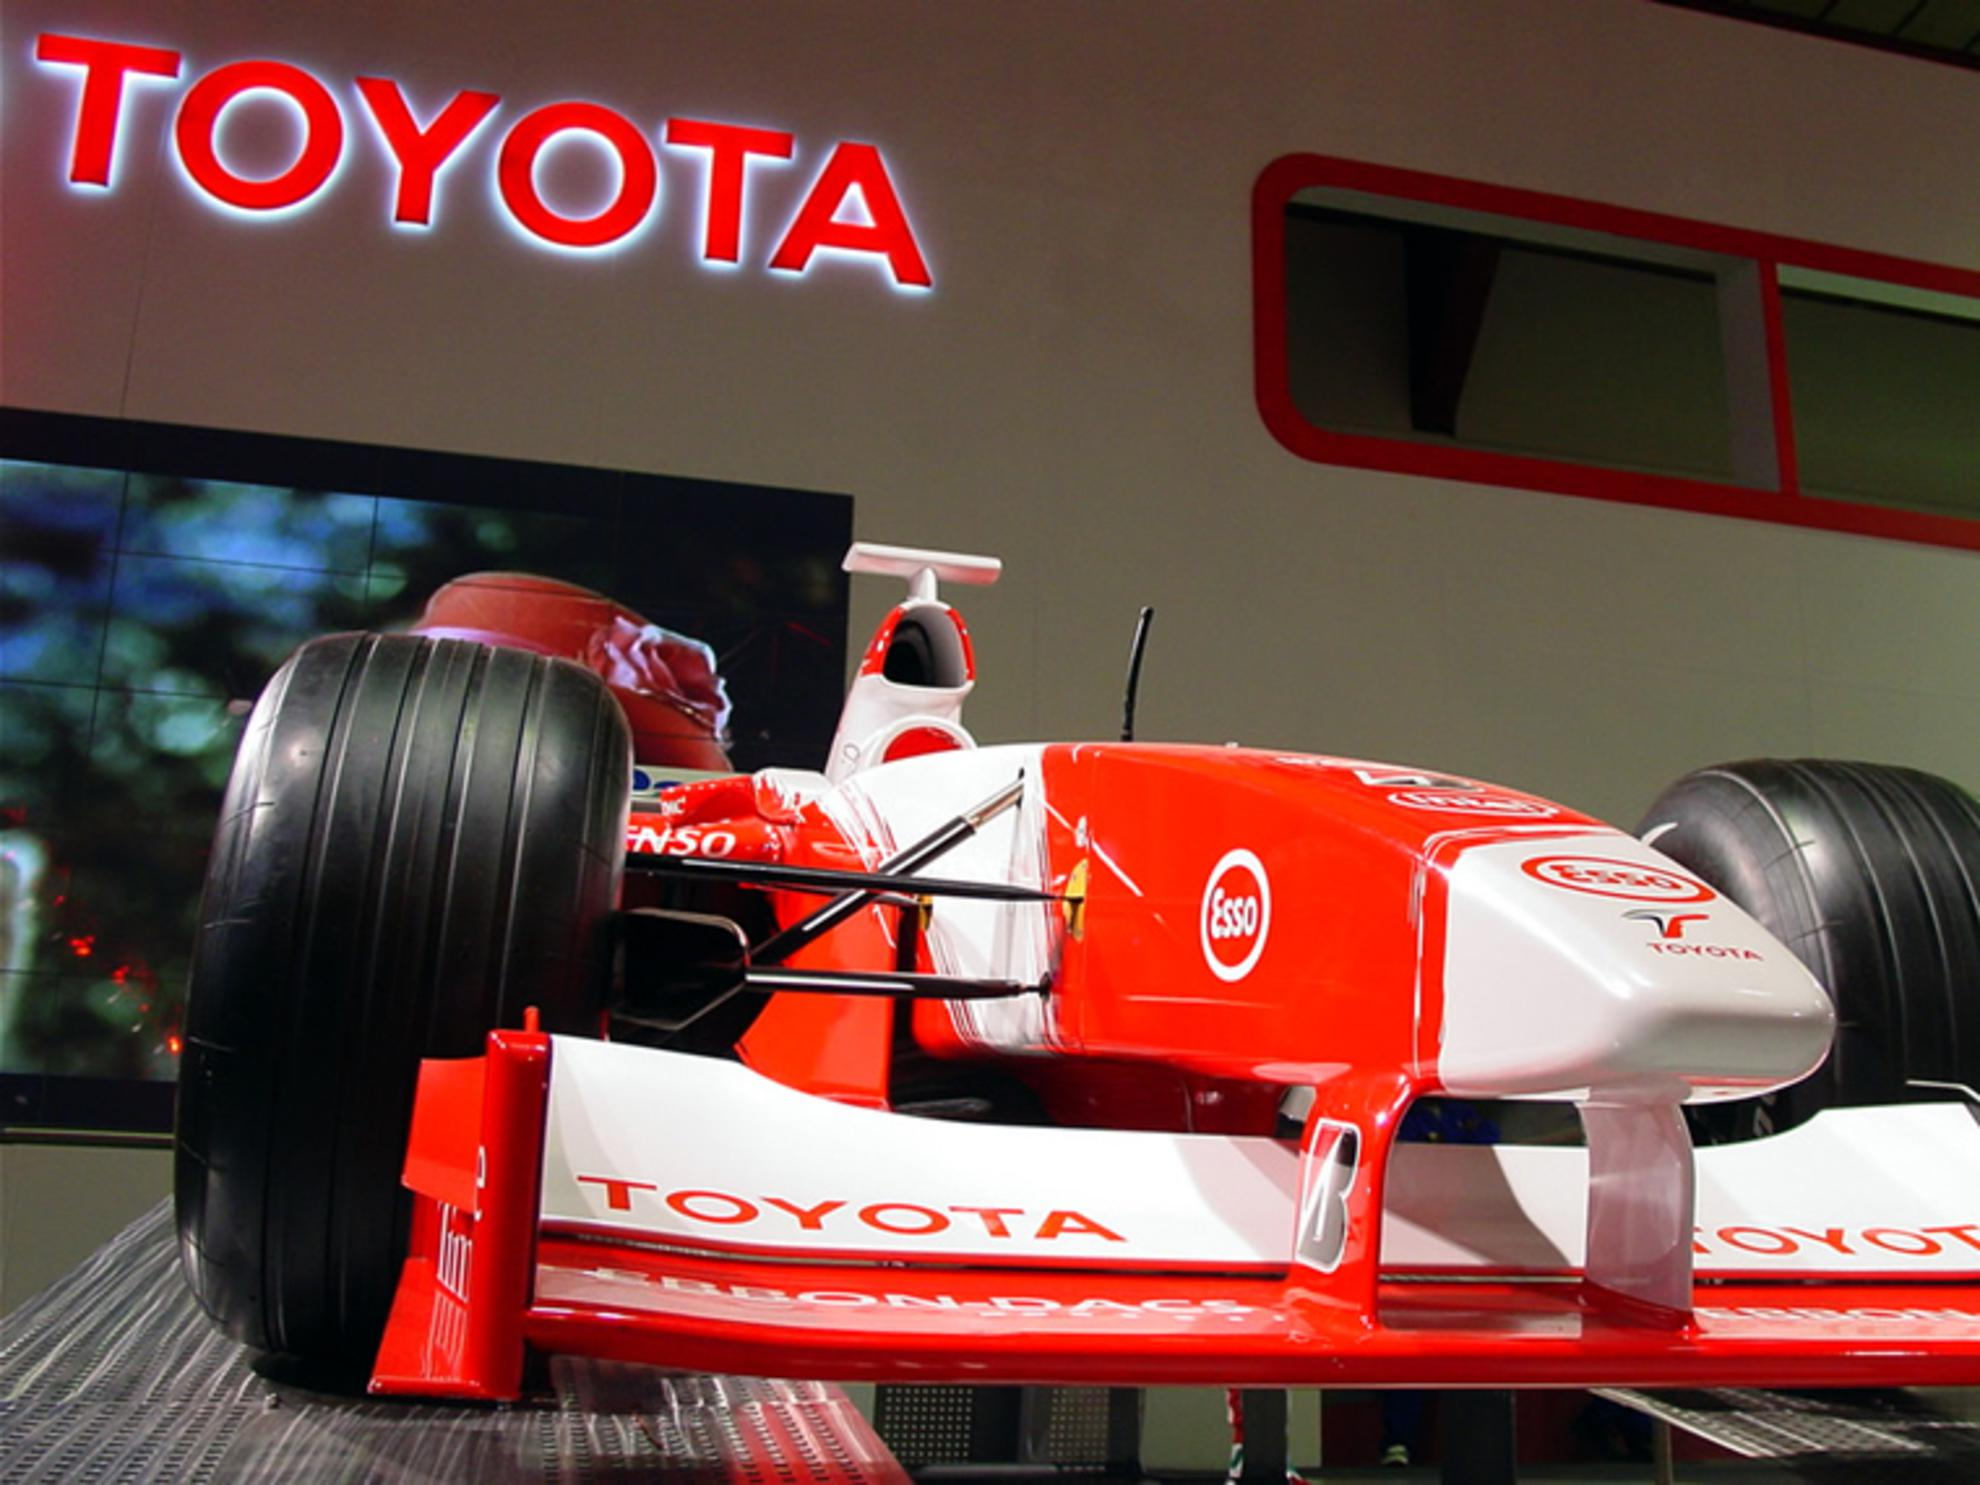 Toyota Formula 1 Racing Car